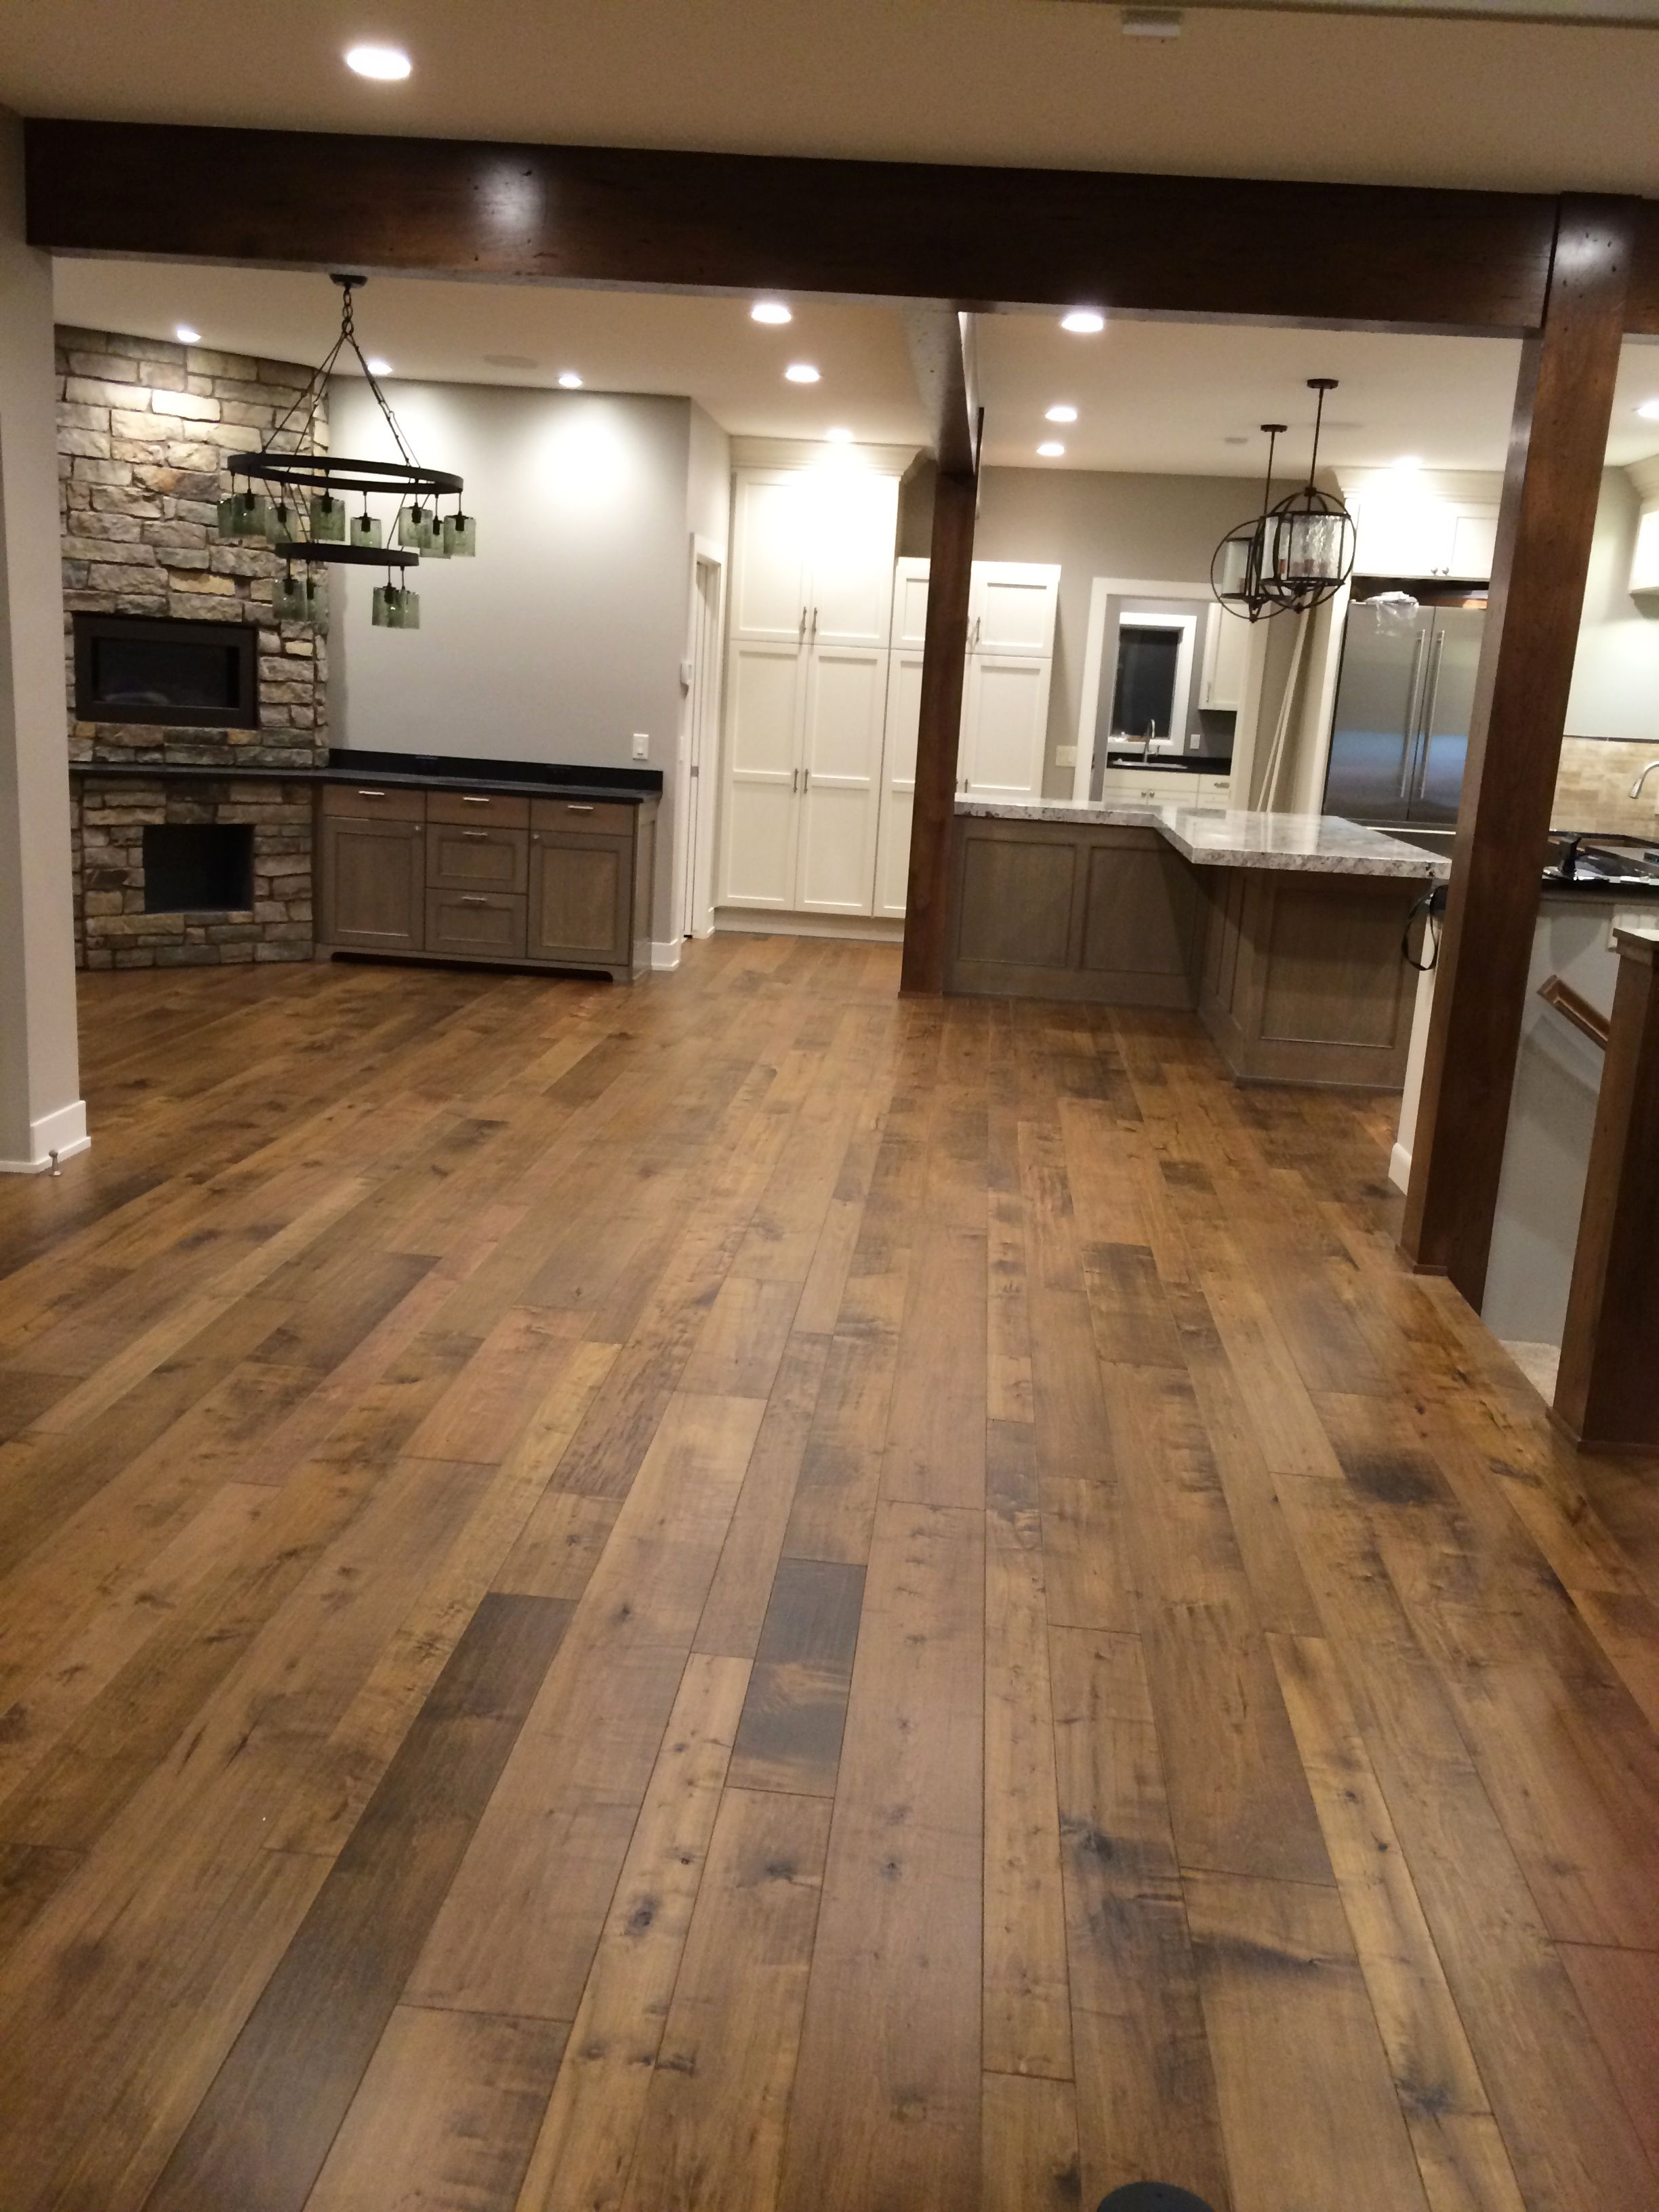 hardwood flooring ideas the floors were purchased from carpets direct and installed by fulton  construction. JBOBPQN